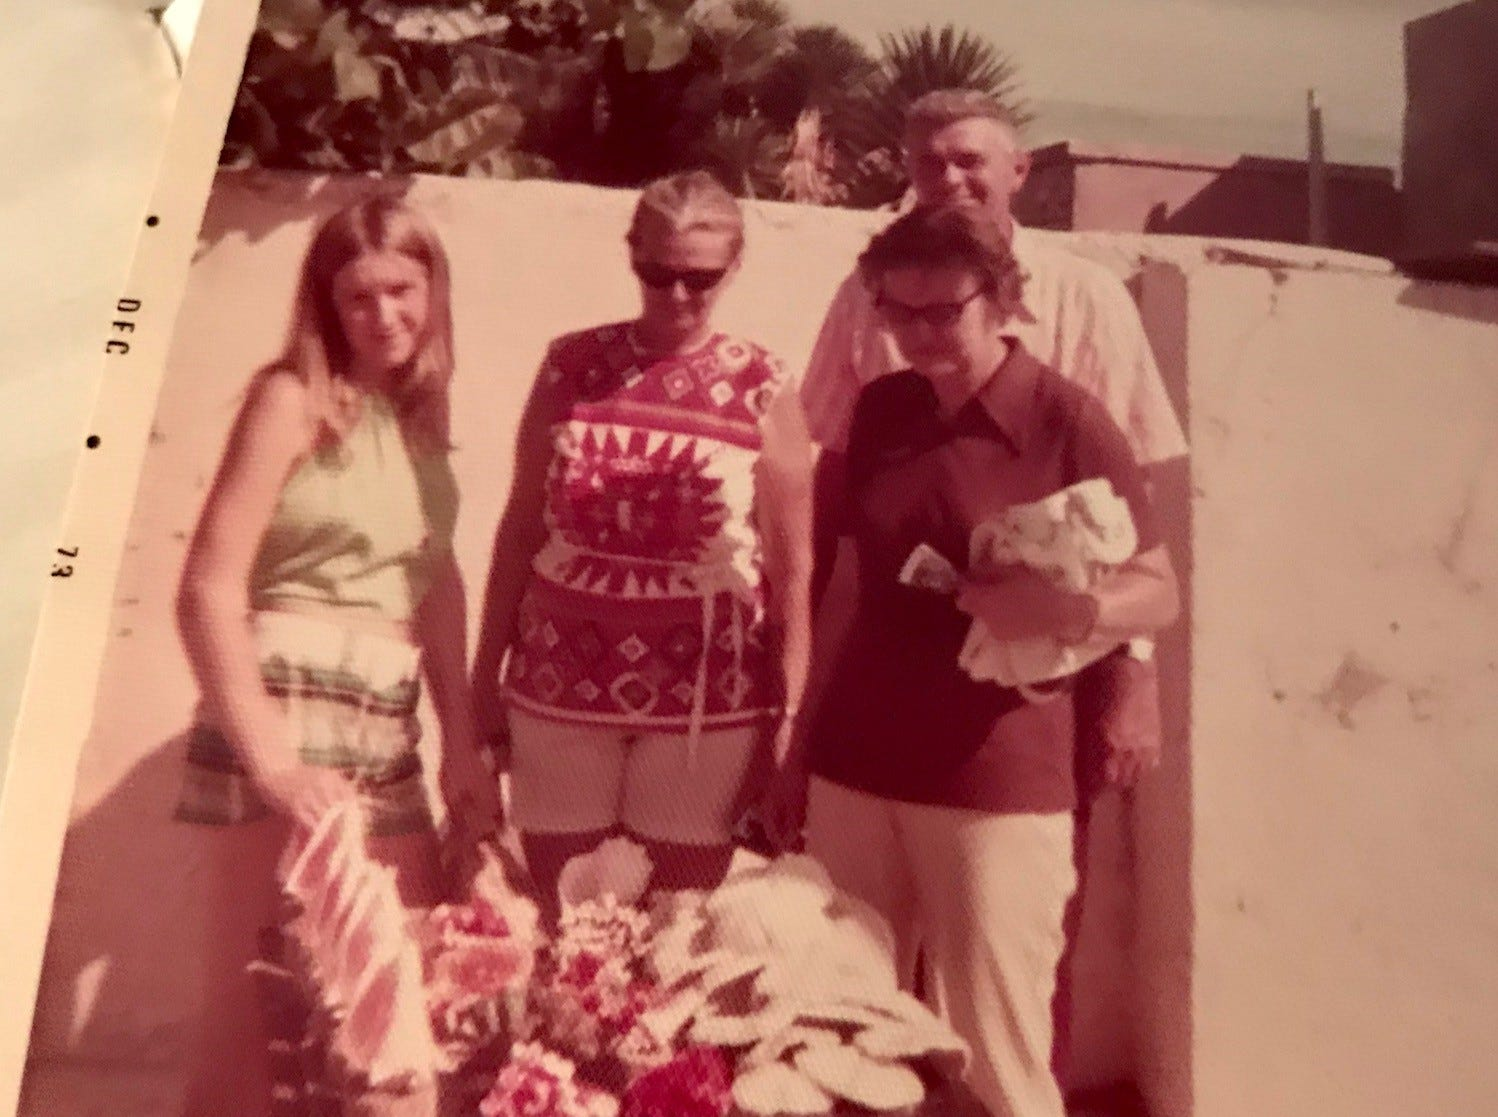 Help ID this family: A photo album found in a Melbourne parking lot in 2011 features shots everyday life: Picnics and ponies. Kids with snowballs. Photos that one by one define days, but taken as a whole, over decades, bring a family's life story into focus.